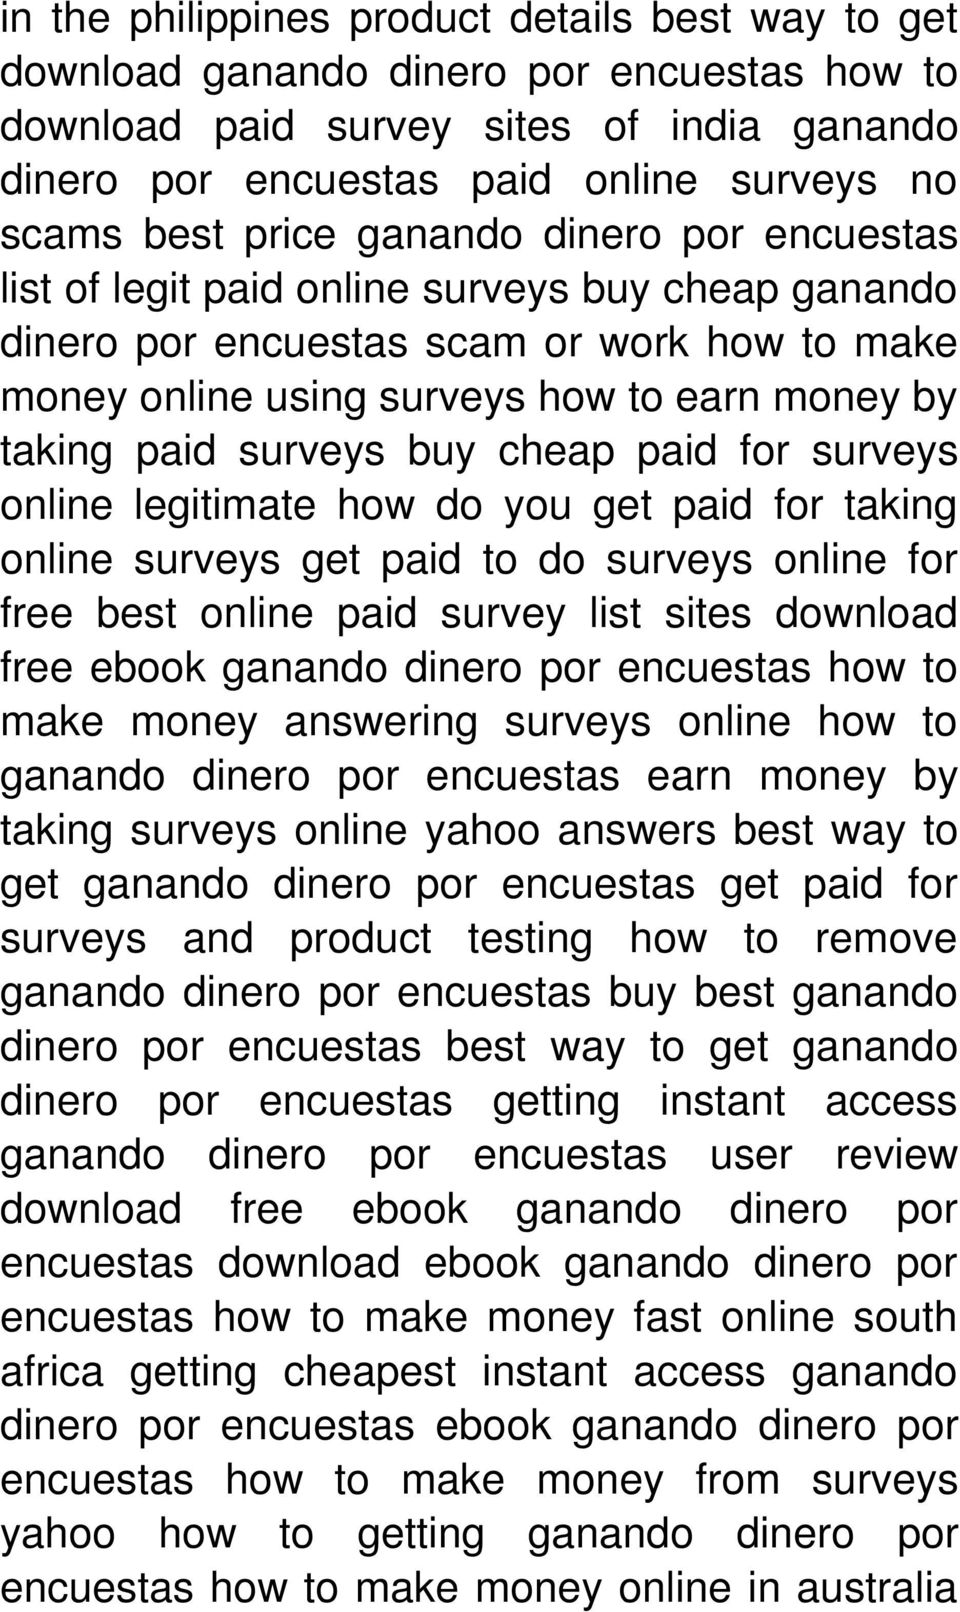 surveys buy cheap paid for surveys online legitimate how do you get paid for taking online surveys get paid to do surveys online for free best online paid survey list sites download free ebook